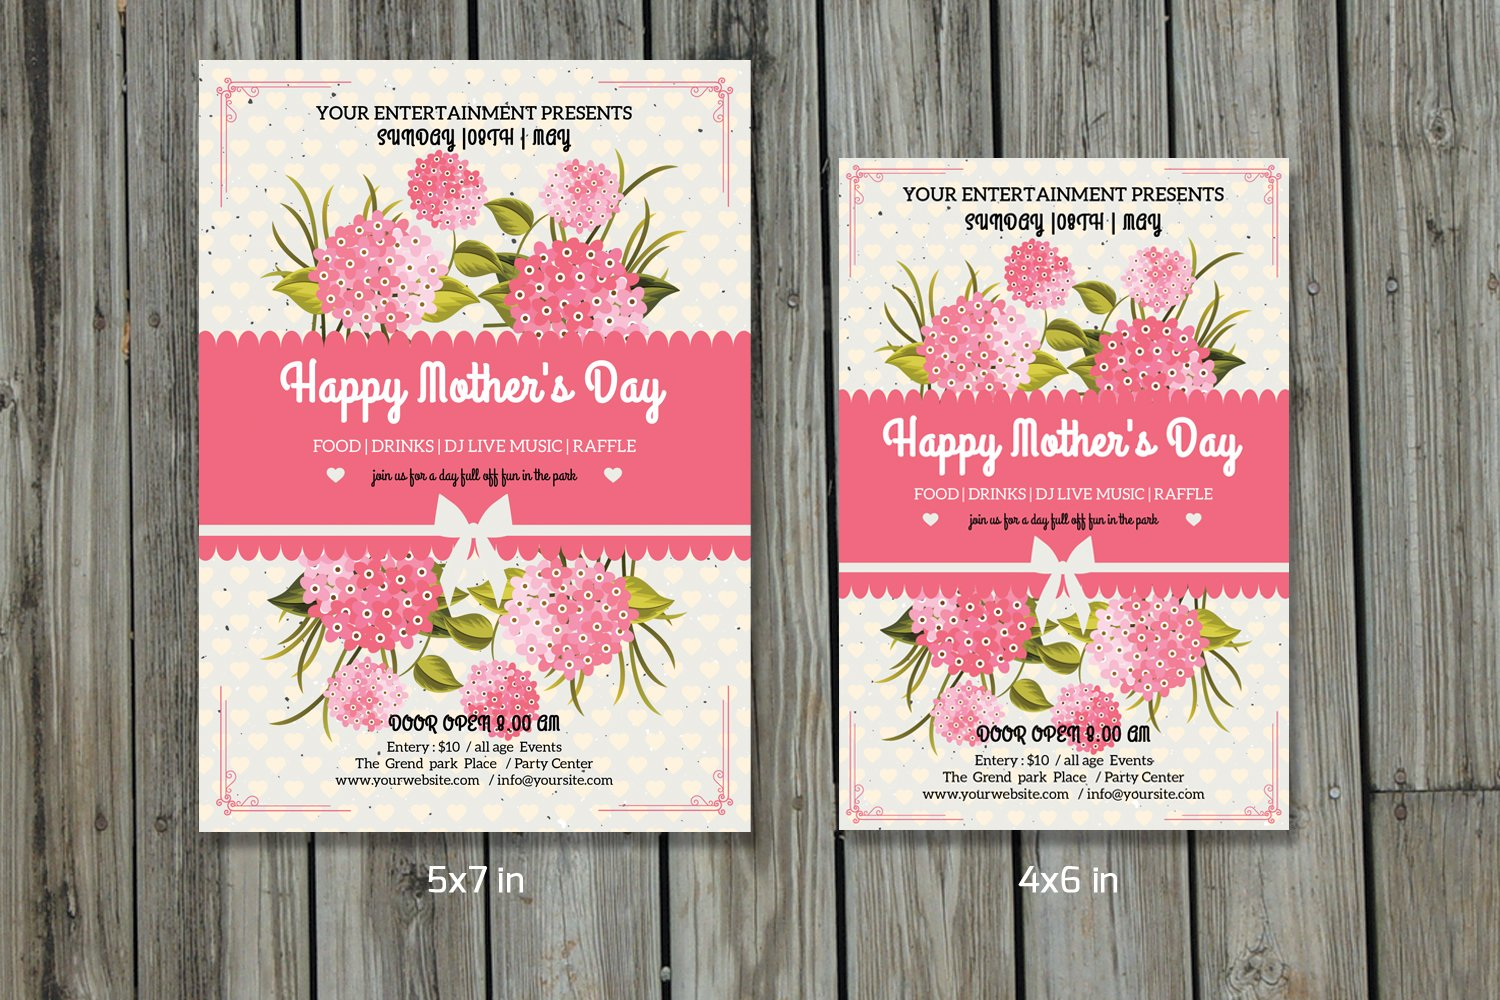 Mothers Day Flyer TemplateV257 Flyer Templates Creative Market – Mothers Day Flyer